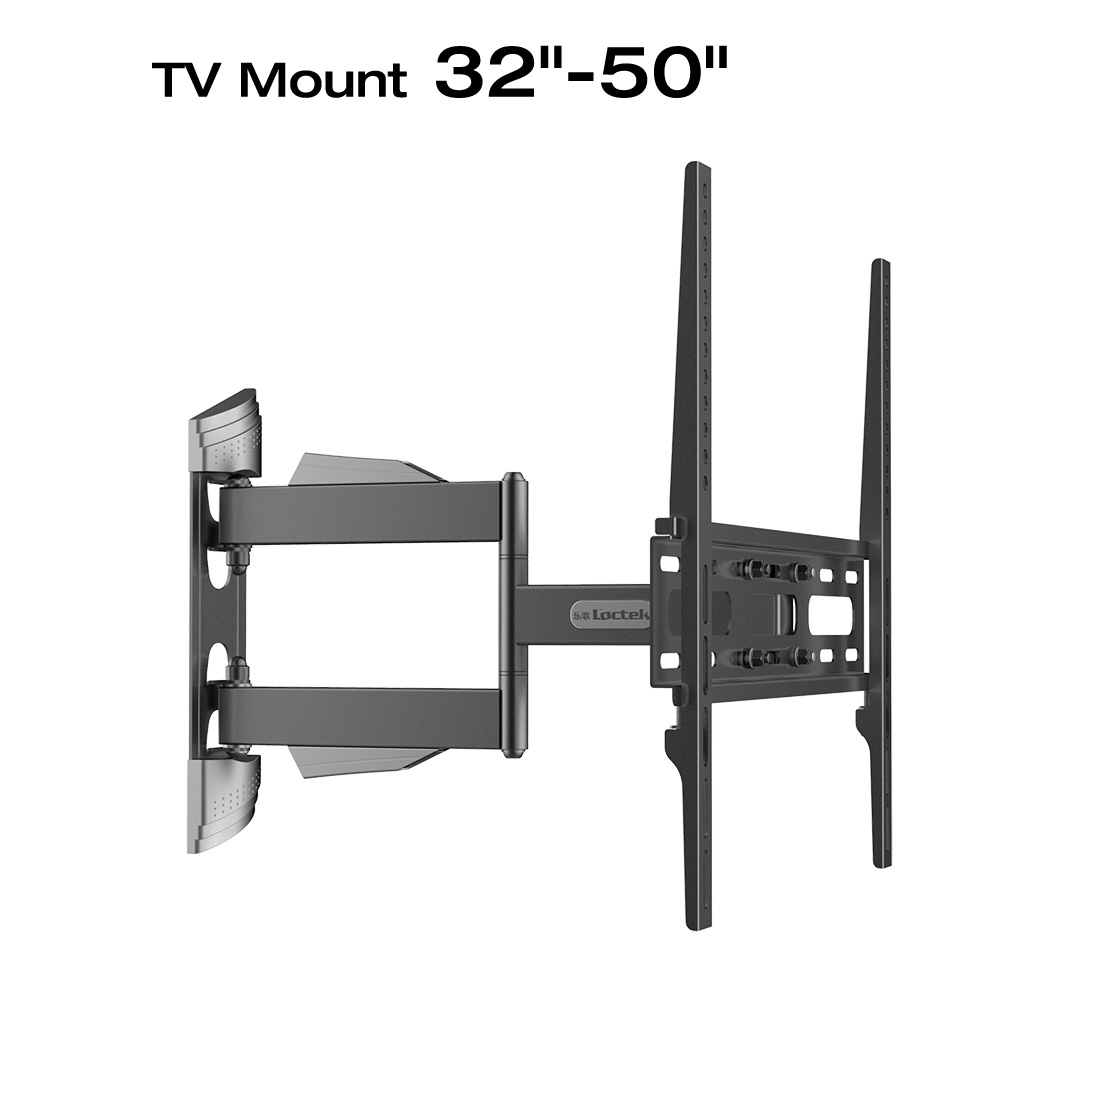 Loctek Tv Mount L3 Articulating Flat Panel Tv Bracket 32 50 Loctek Ergonomic